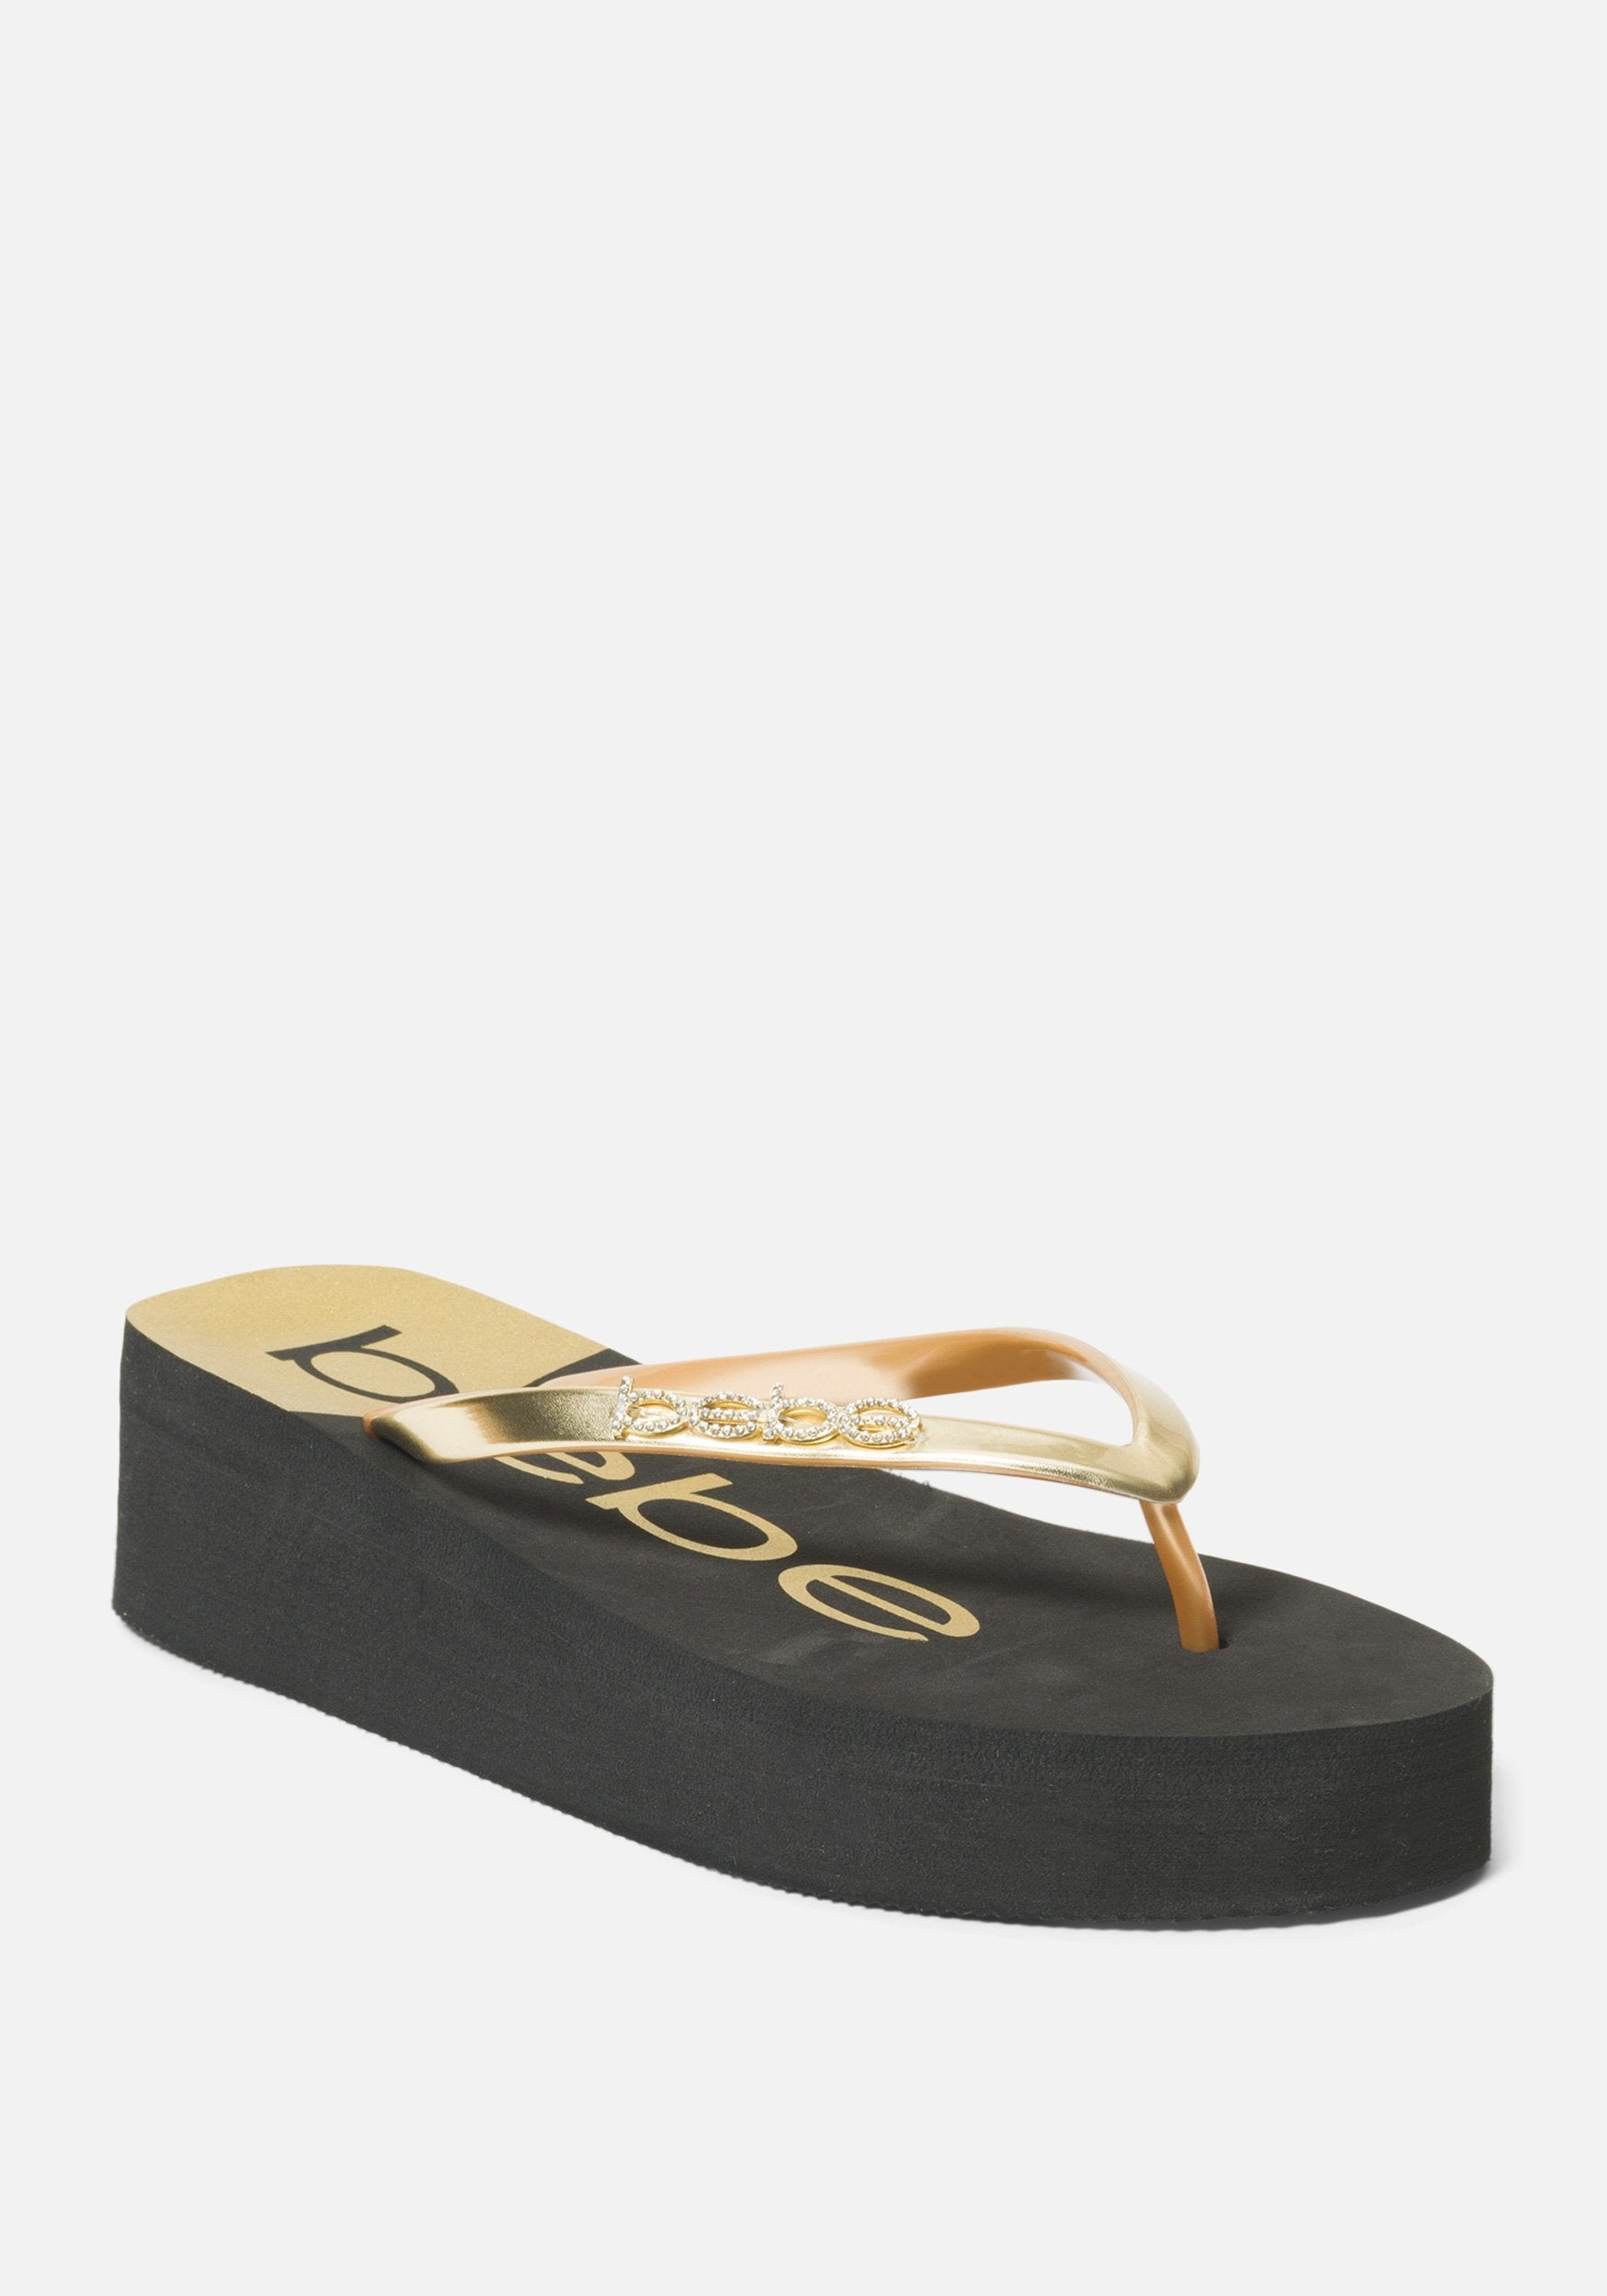 Bebe Women's Jeanie Wedge Flip Flops, Size 6 in Black/Gold Synthetic